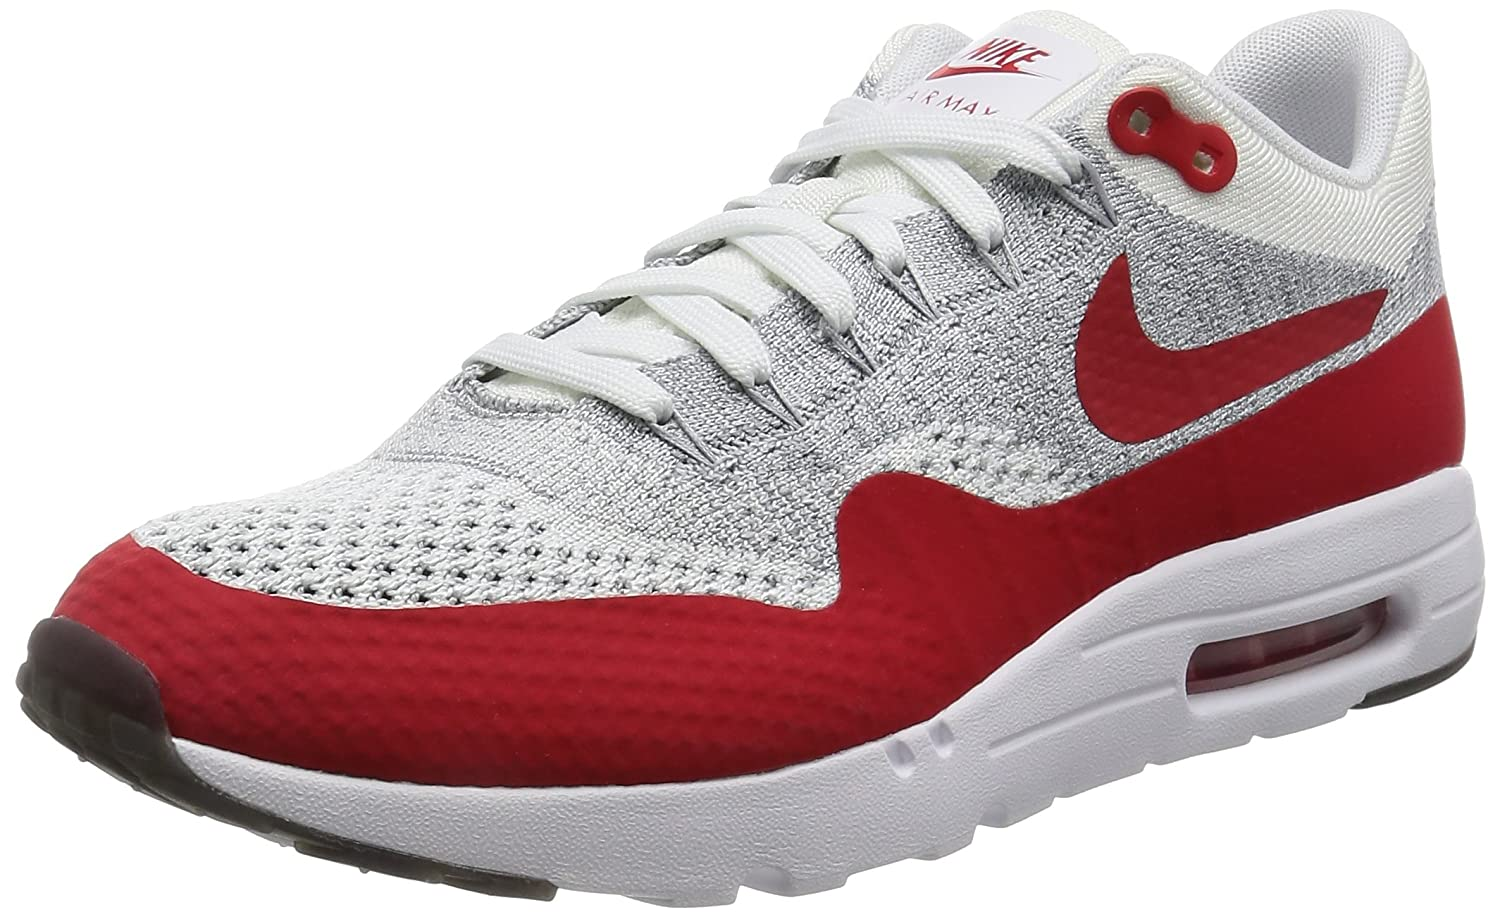 NIKE Air Max 1 Ultra Flyknit Men's Sneaker (8.5 D(M) US, WhitePure PlatinumCool GreyUniversity Red)